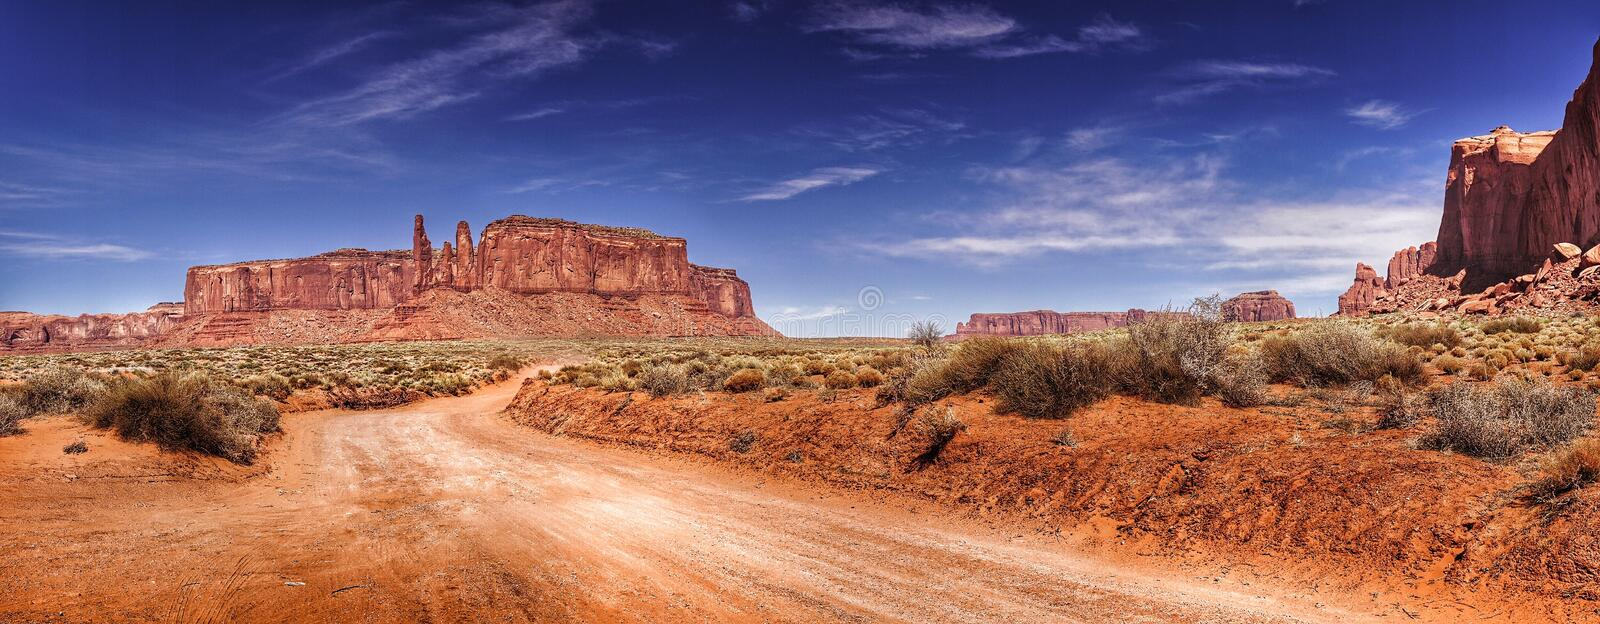 Road in monument Valley stock photo